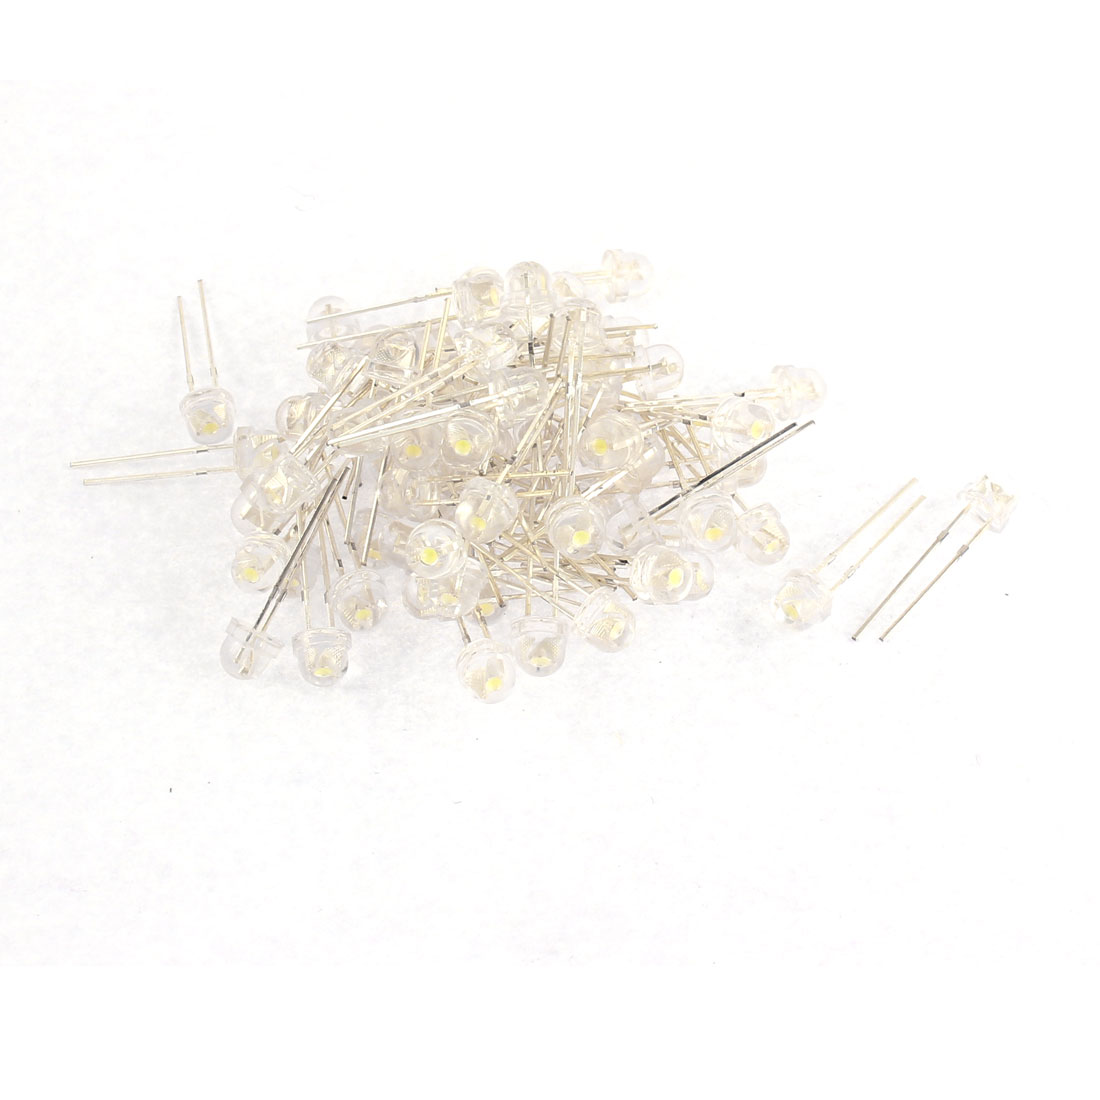 75pcs Straw Hat Head Ultra-Bright White Light LED Emitting Diodes Bulb